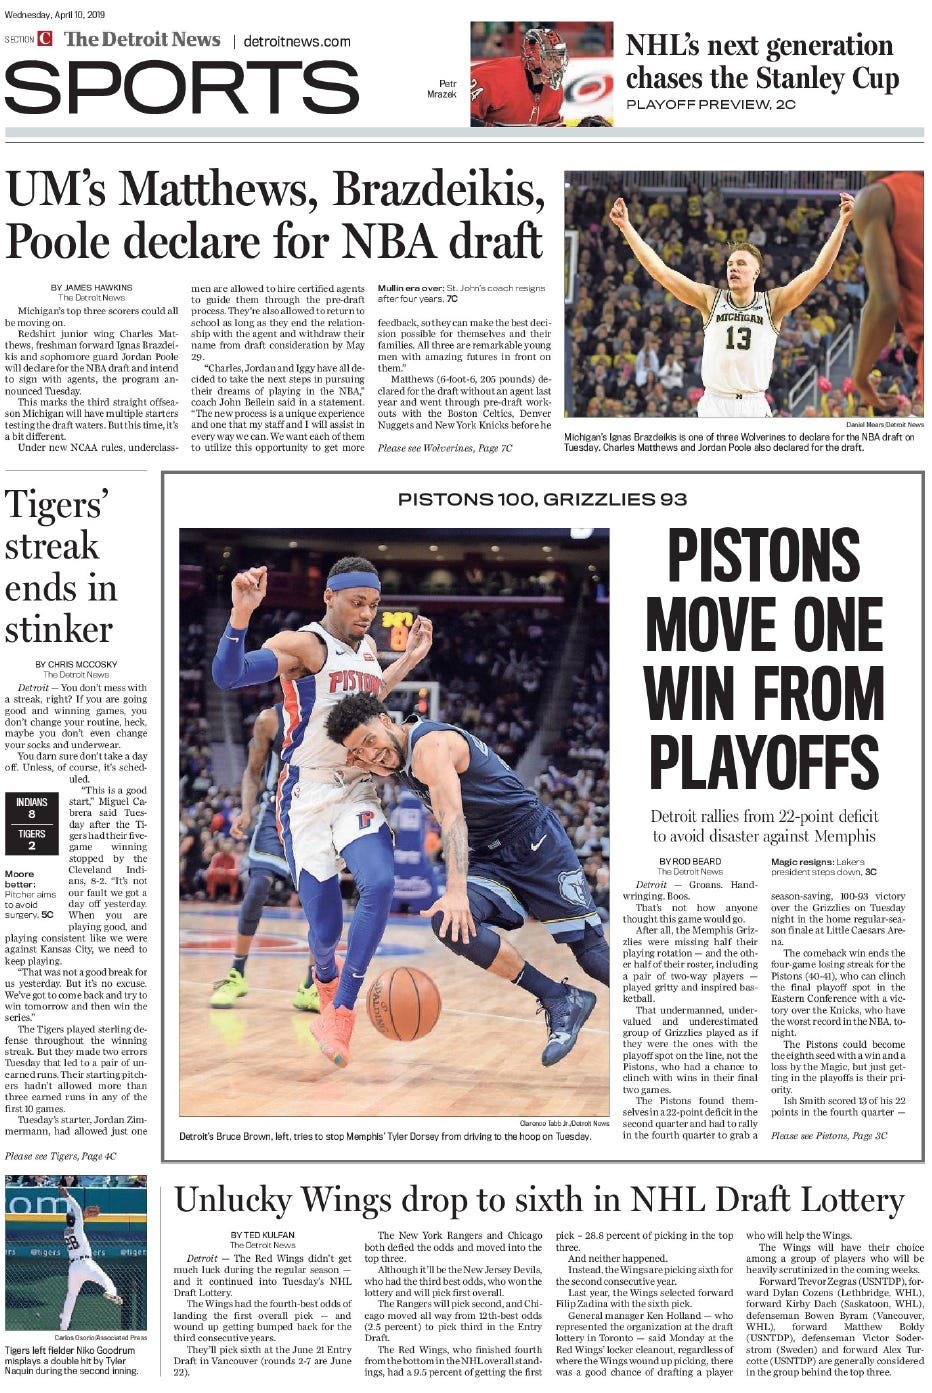 https://www detroitnews com/picture-gallery/sports/2018/05/06